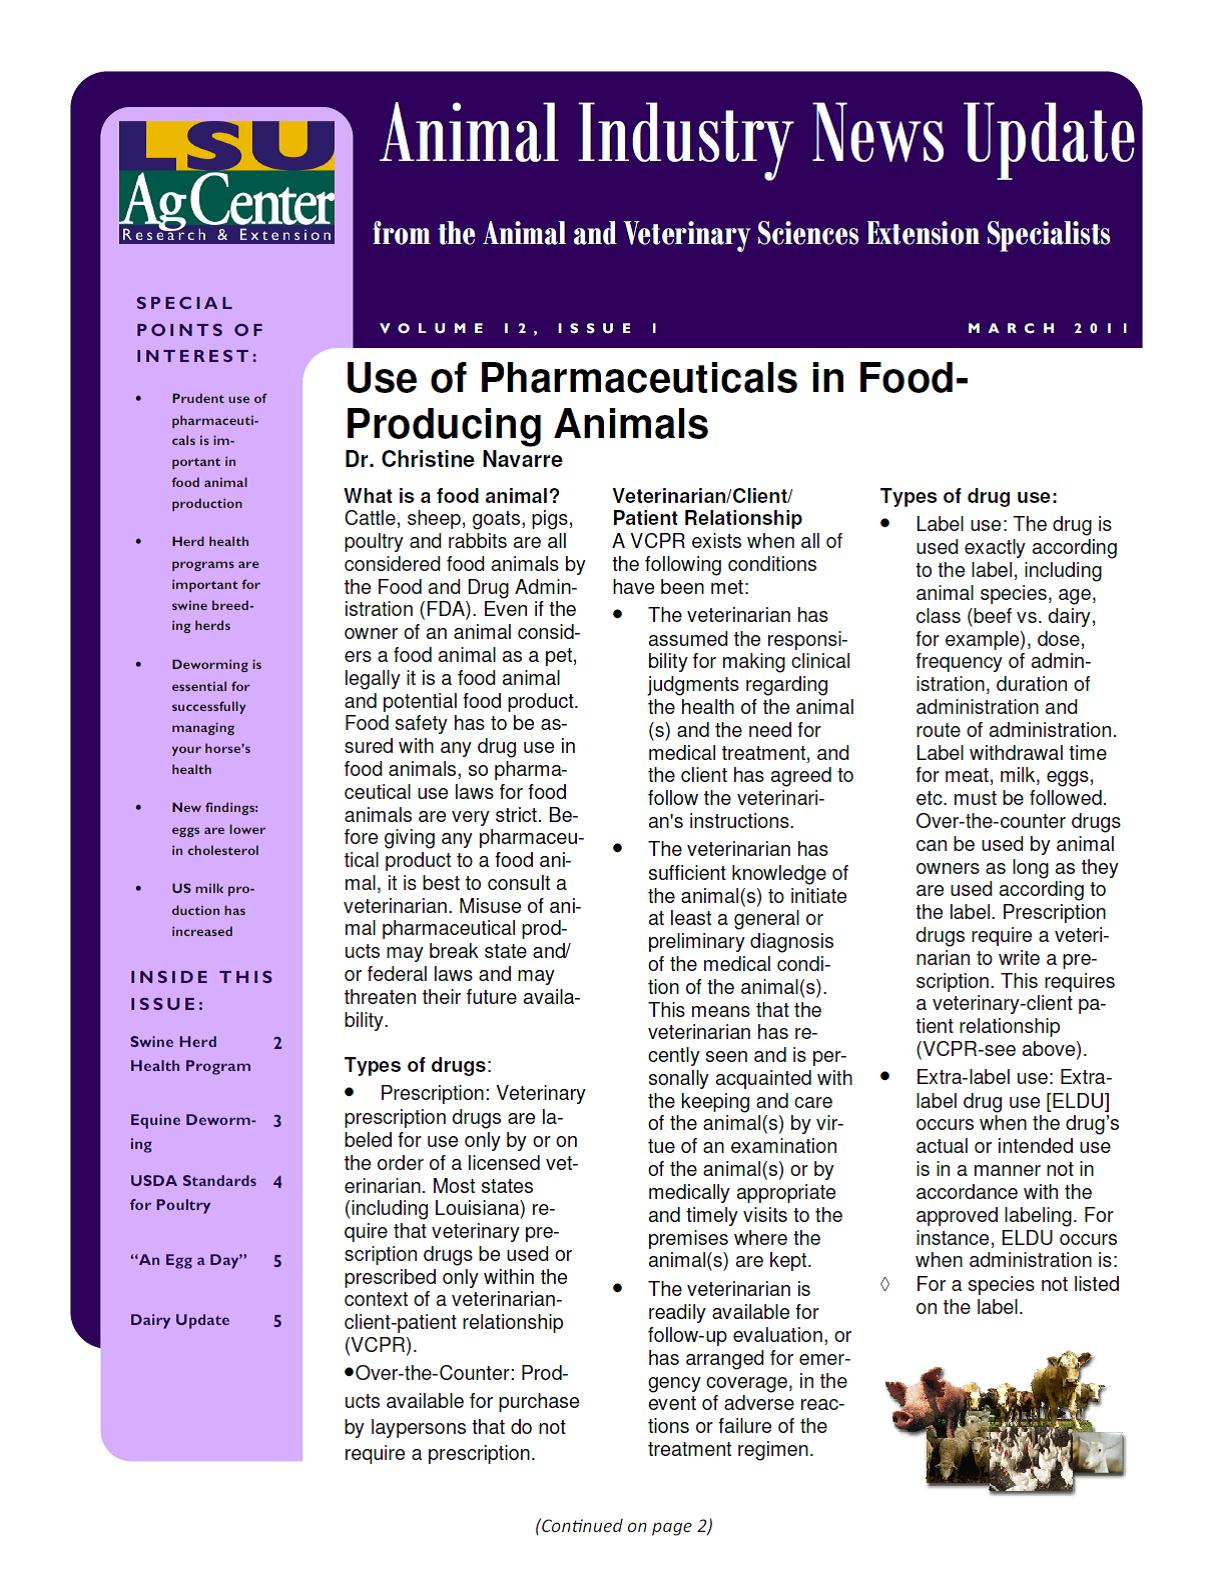 Animal Industry News Update March 2011 Vol 12; Issue 1